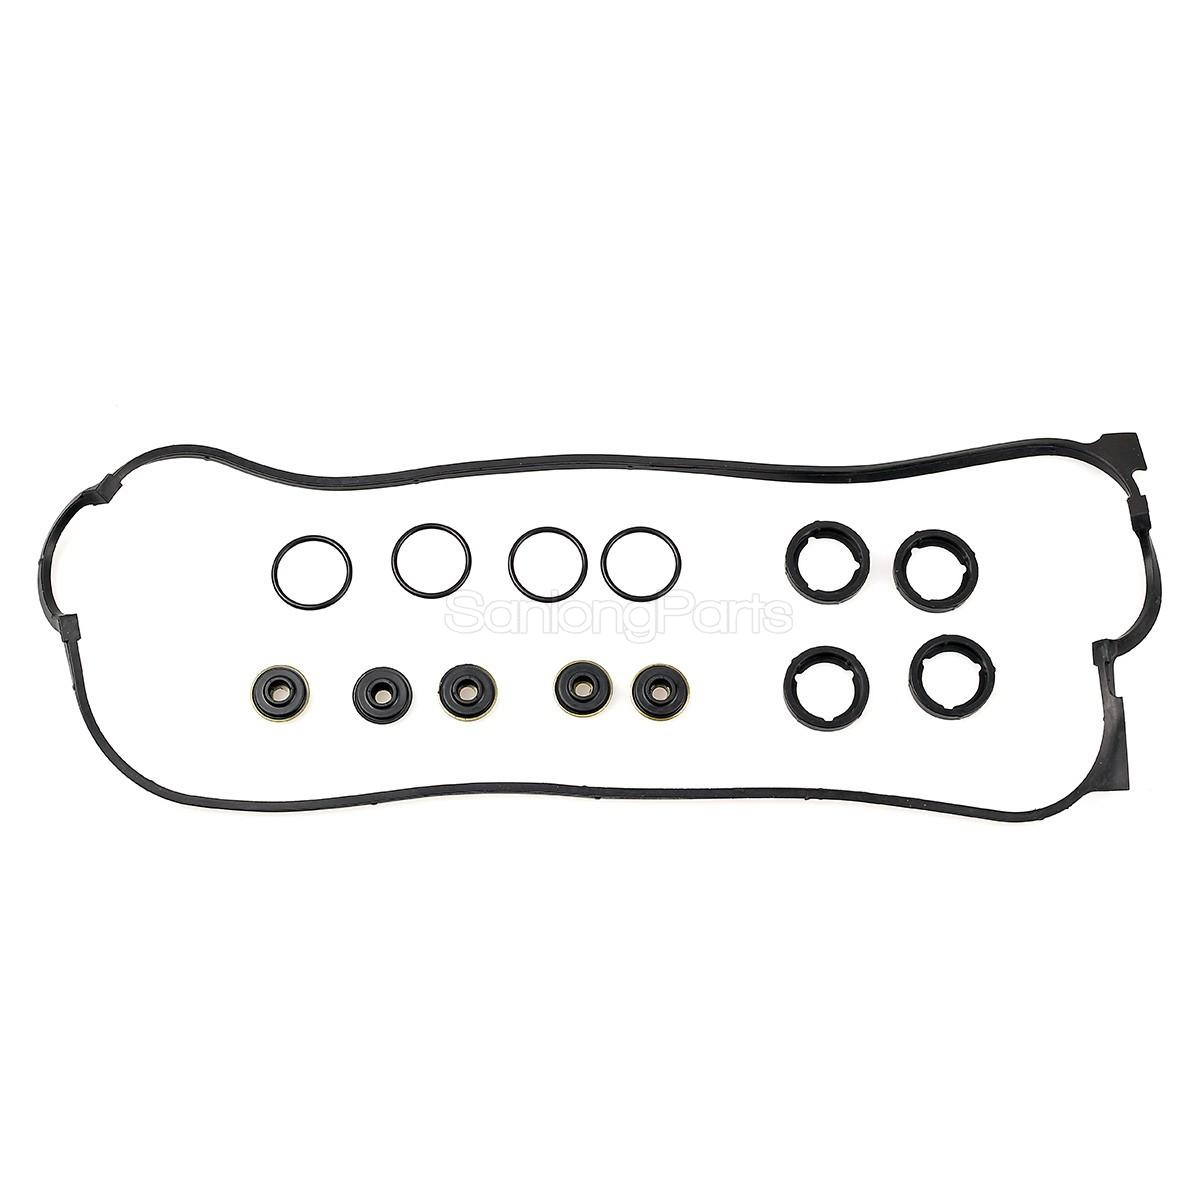 Valve Cover Gasket Set Fits For Honda Accord Prelude